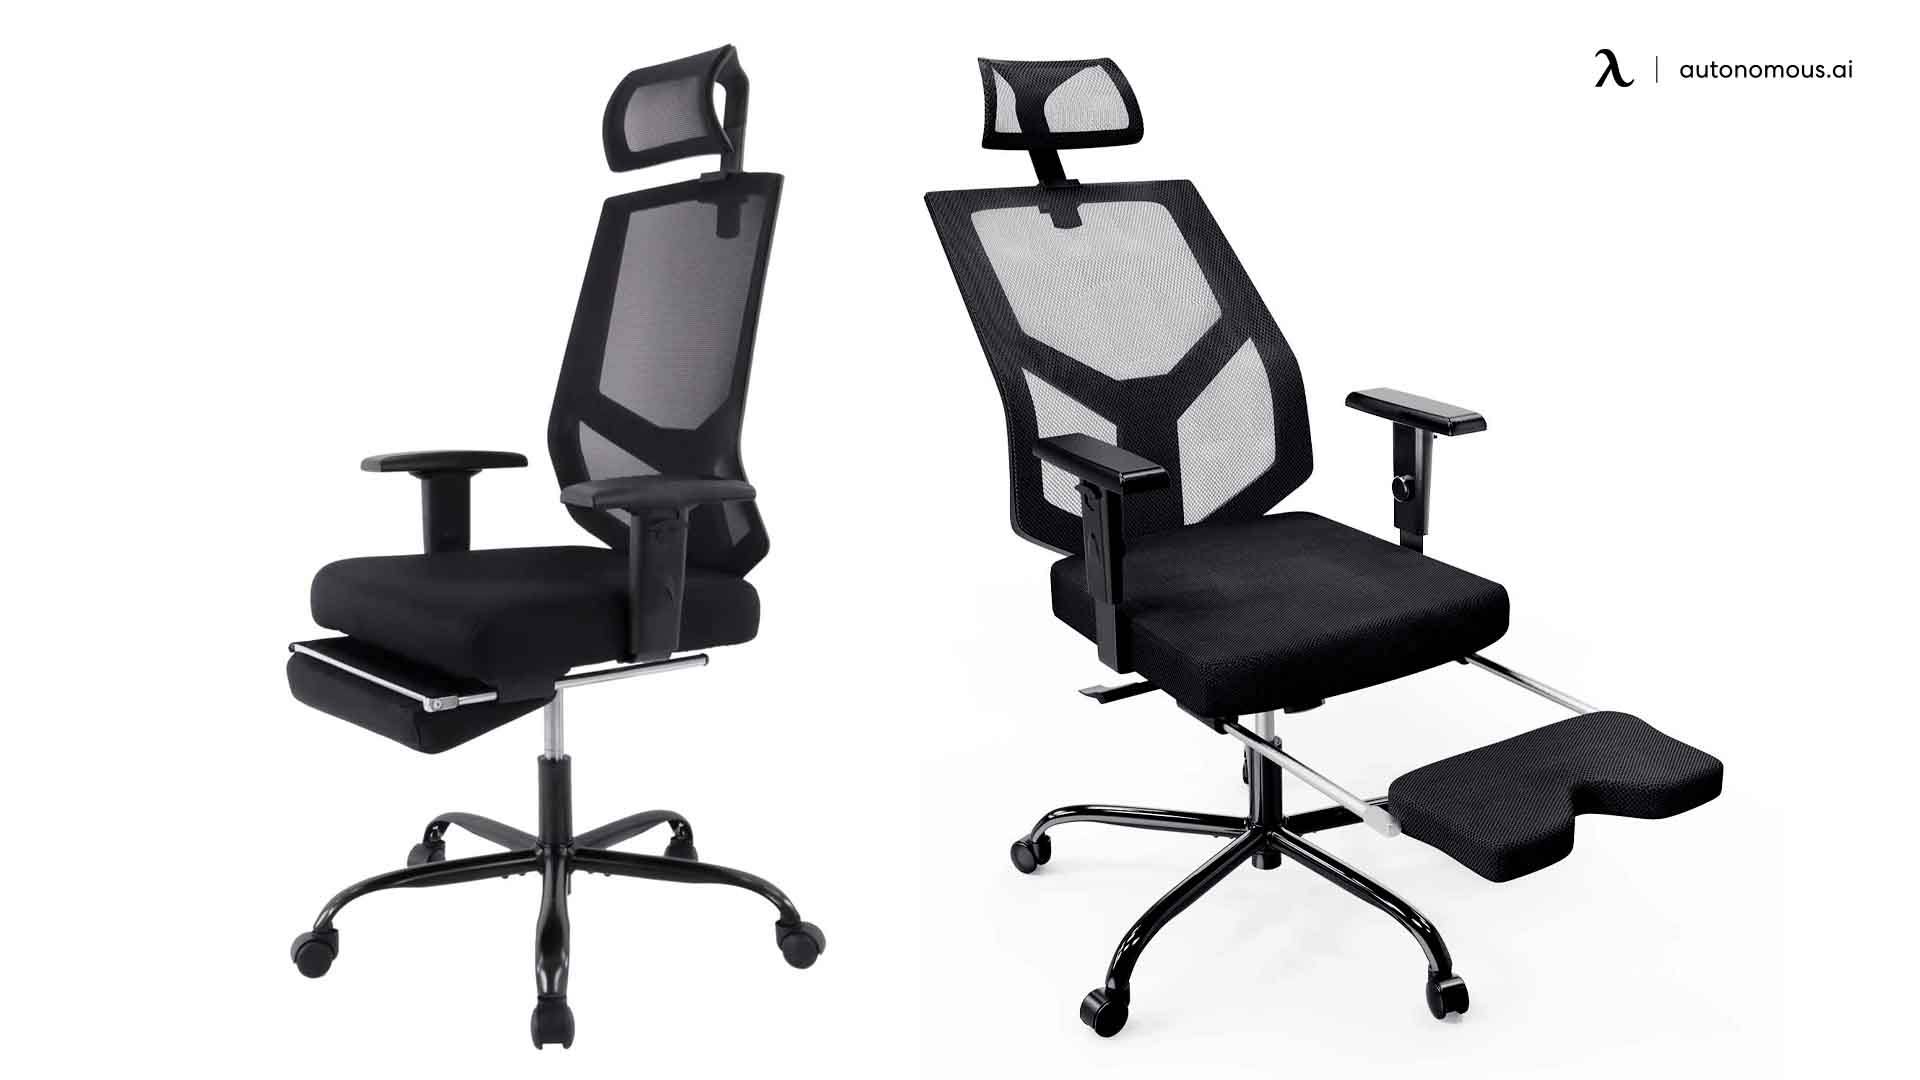 Smugdesk Office Chair with a Retracting Footrest